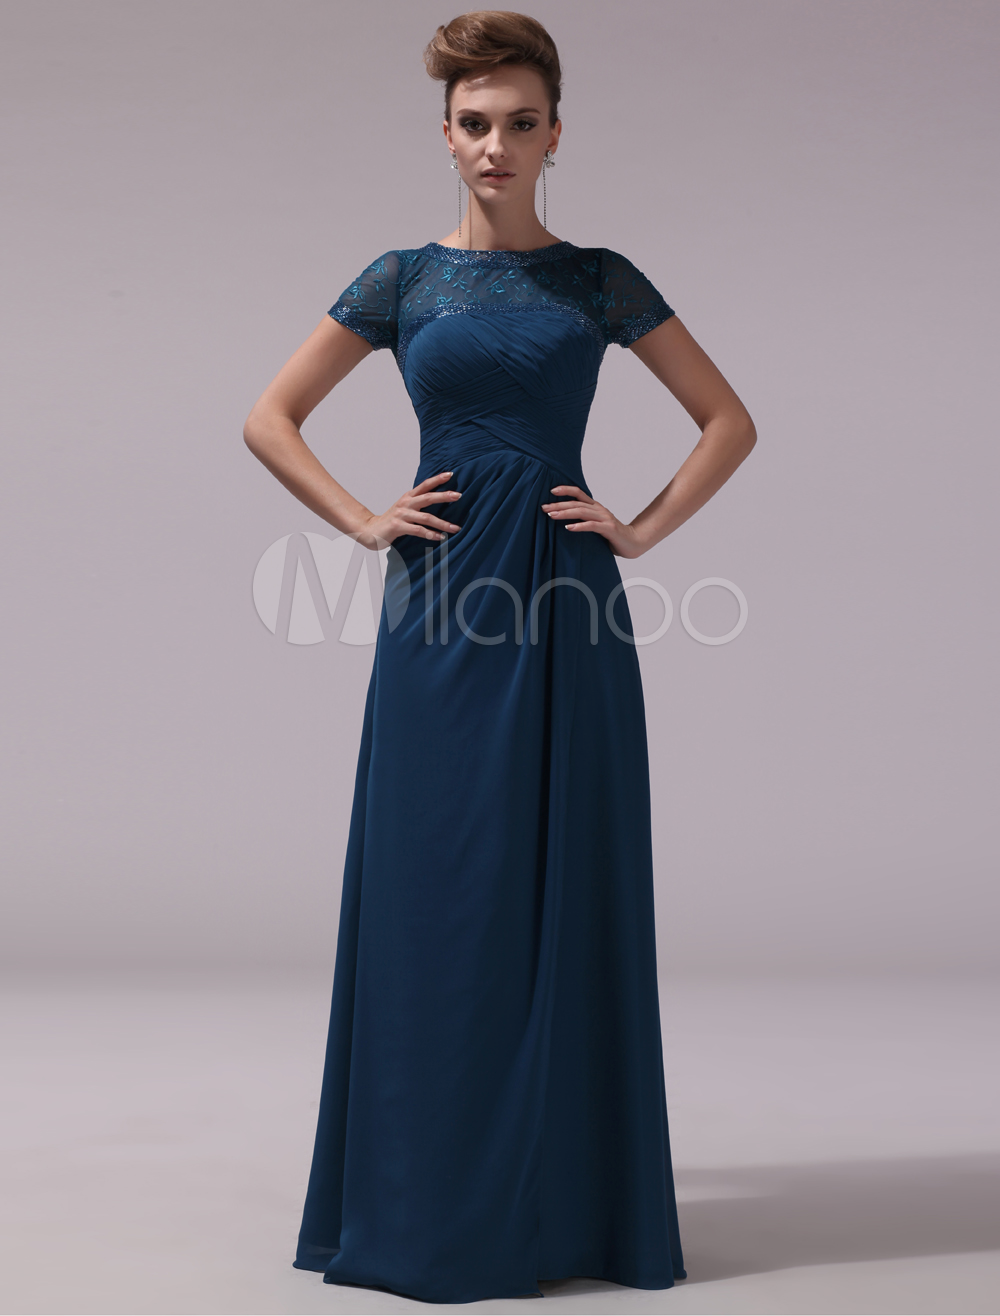 Dark Navy A-line Chiffon Short Sleeves Mother of the Bride Dress with Jewel Neck Beading Milanoo